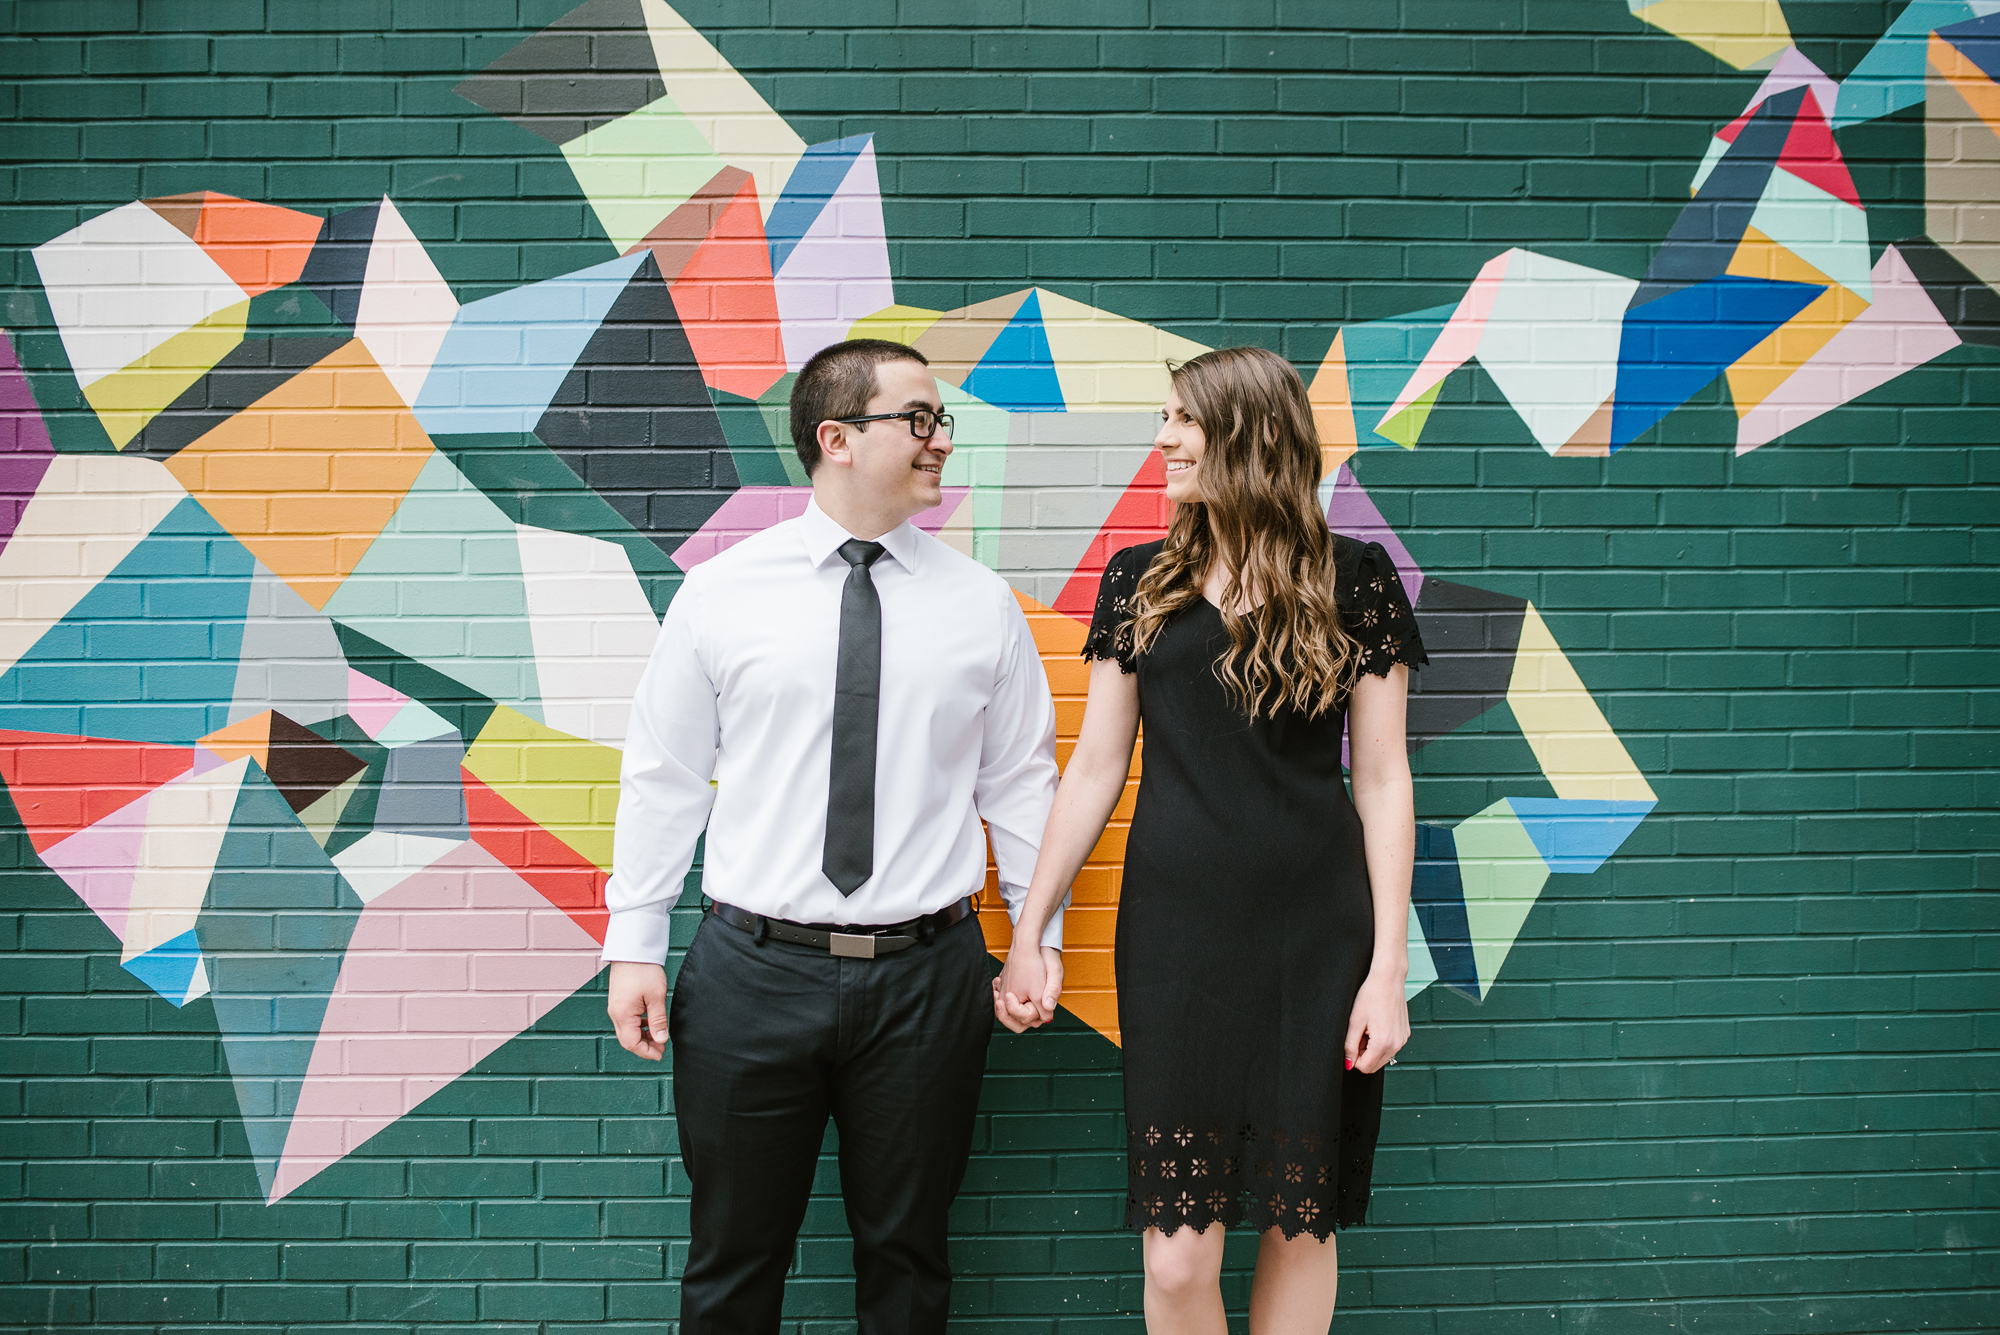 grand-rapids-downtown-spring-engagement-session (6).jpg